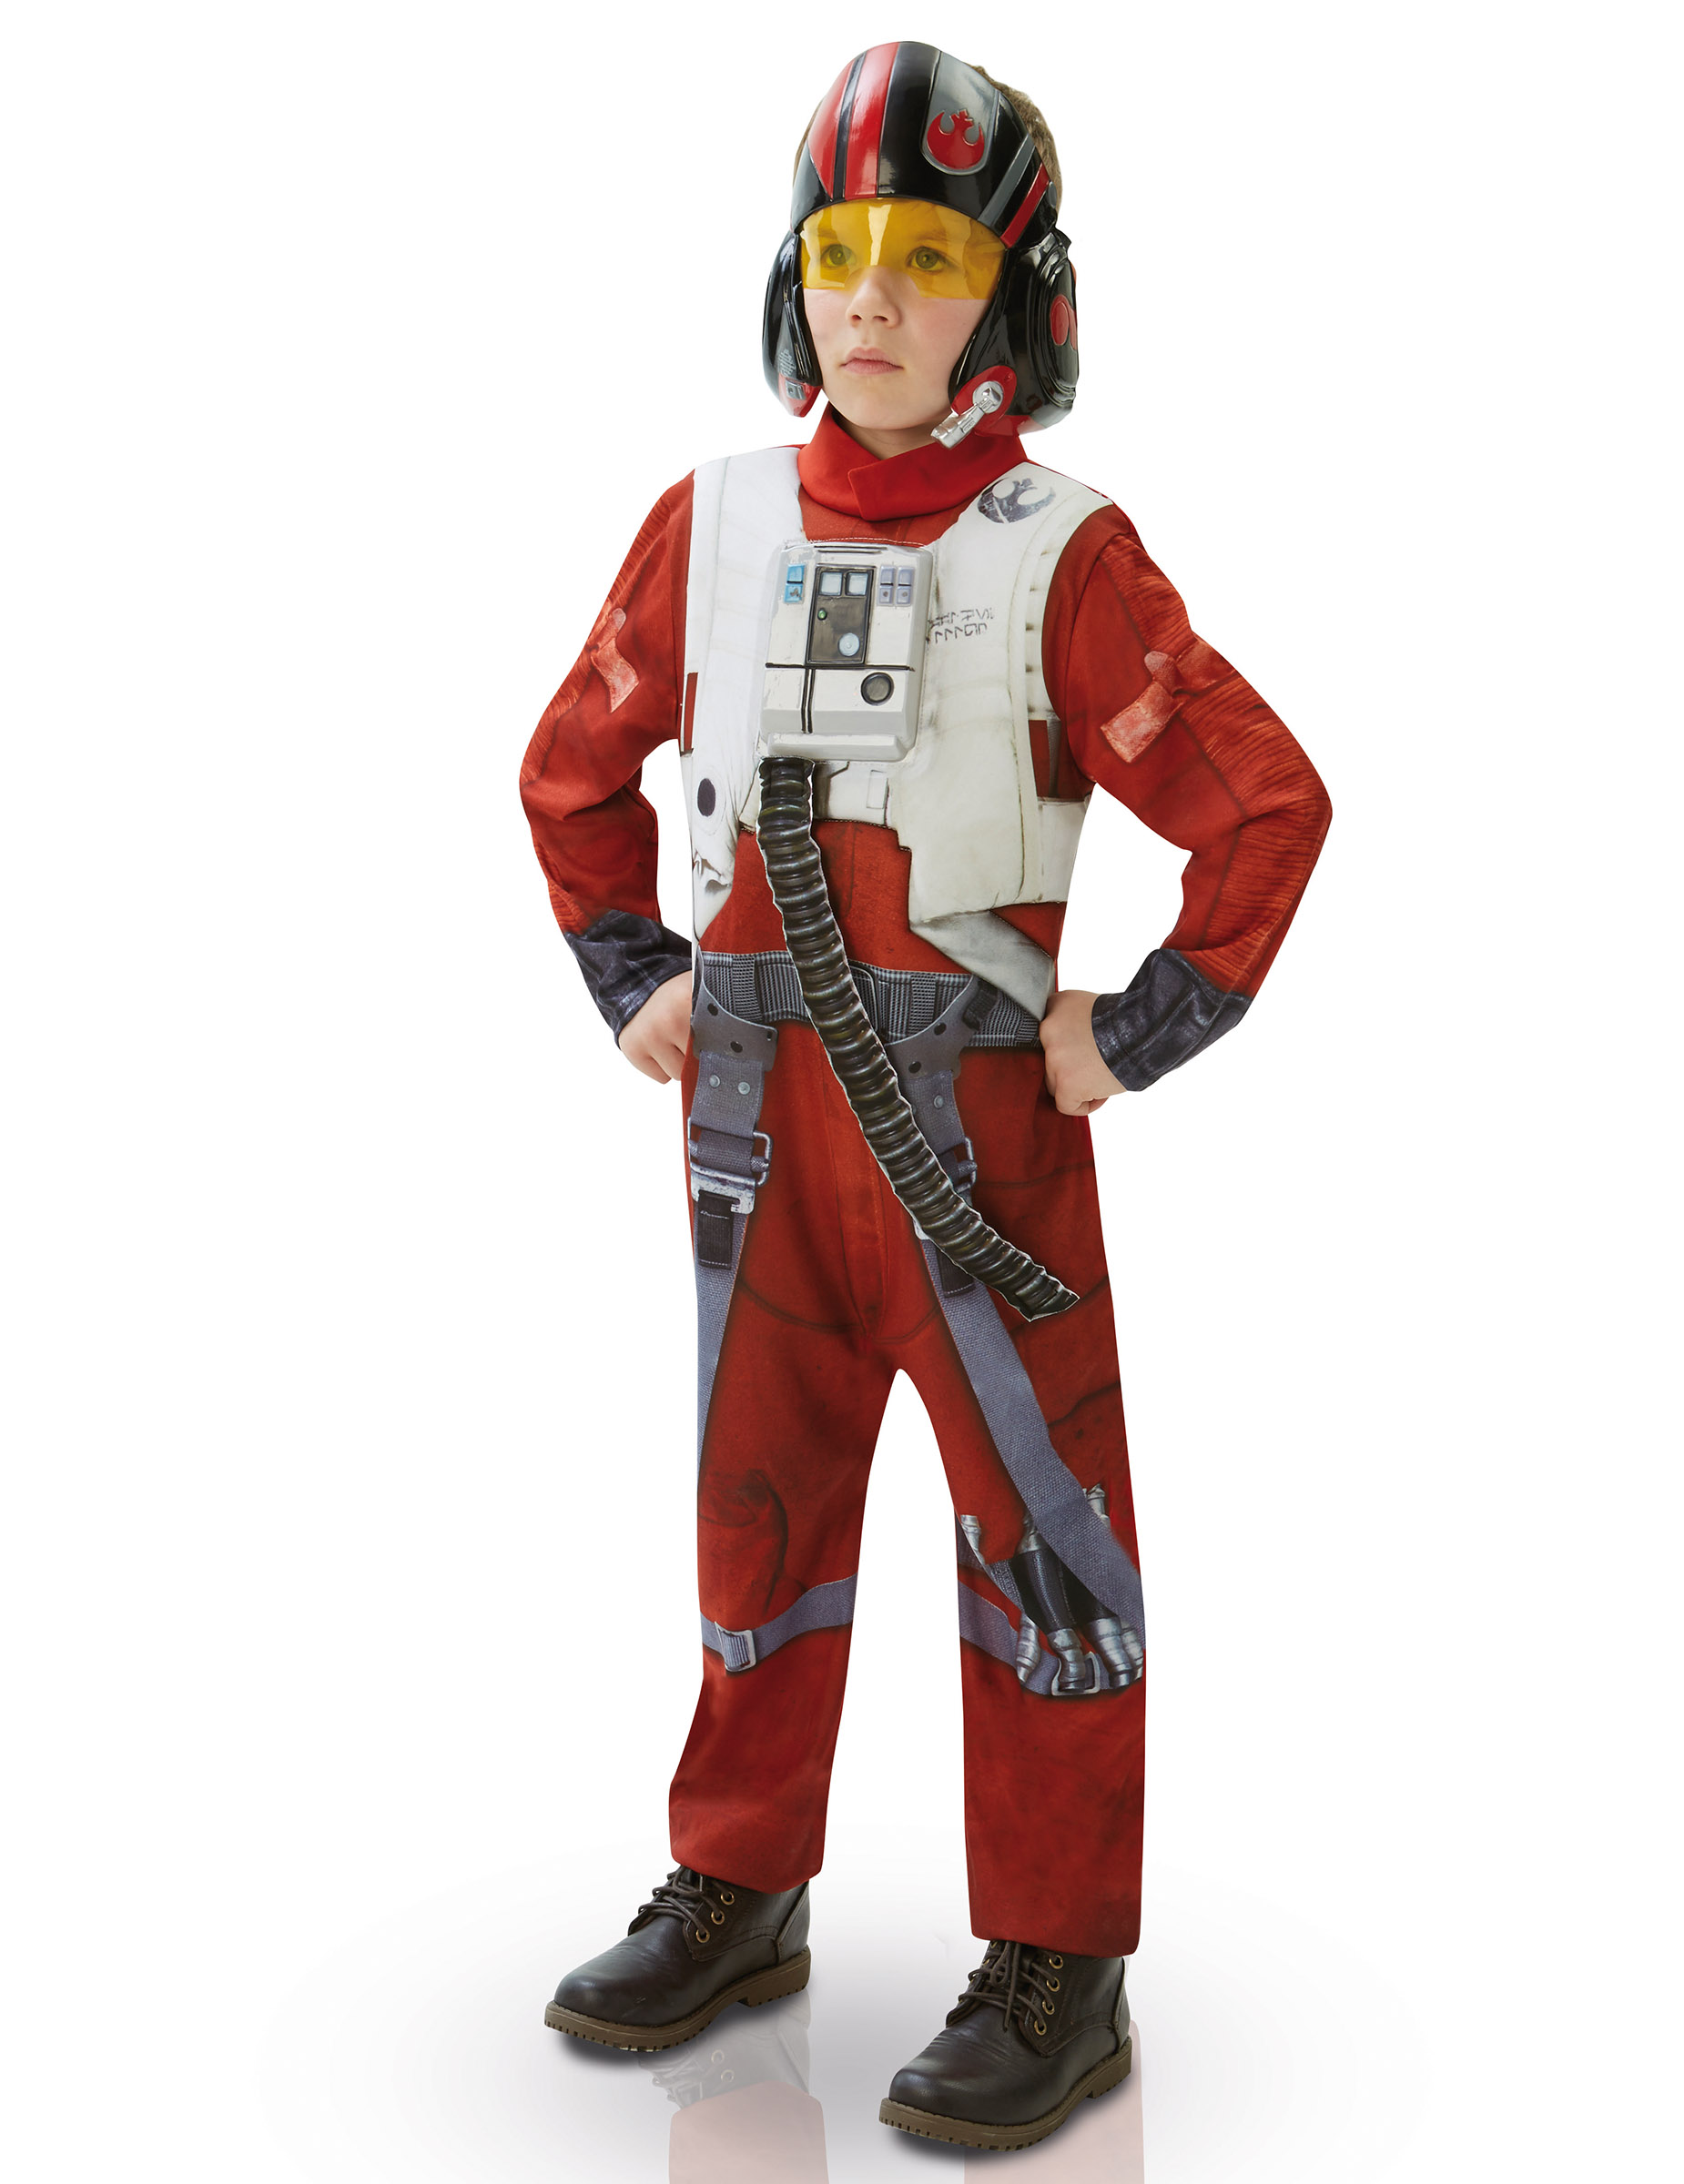 hochwertiges kinderkost m der star wars vii figur poe dameron. Black Bedroom Furniture Sets. Home Design Ideas